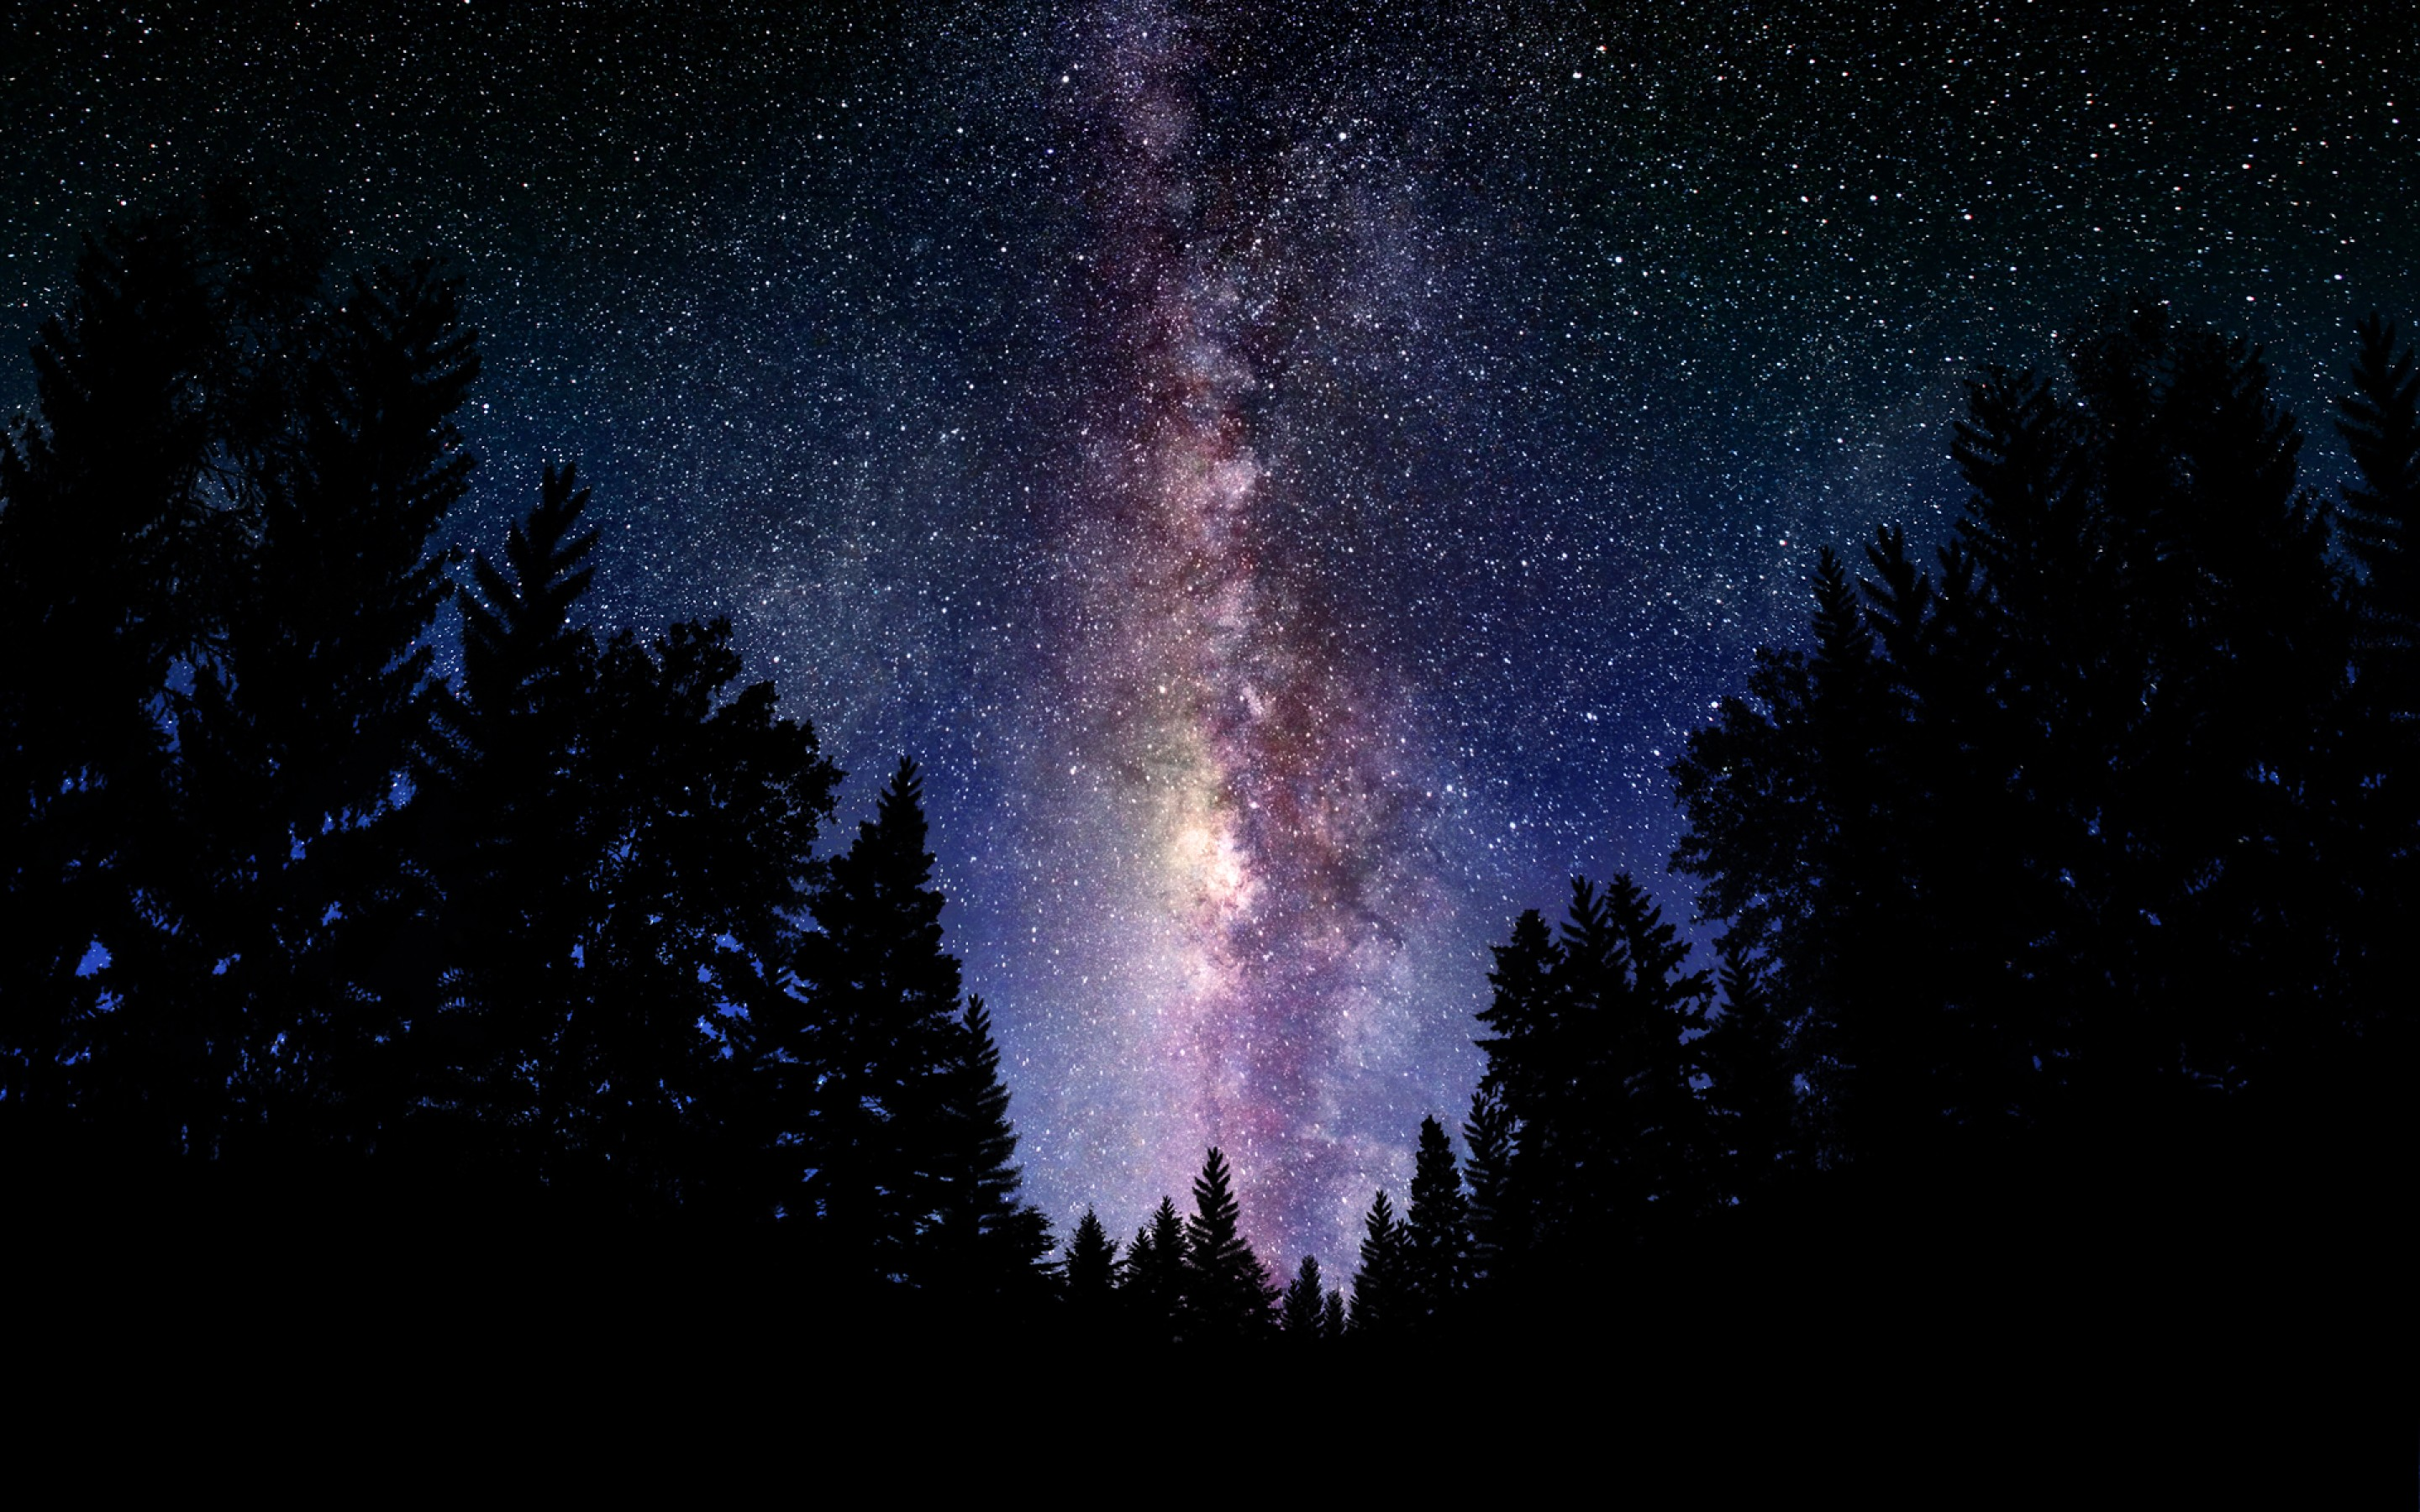 Galaxies Wallpaper